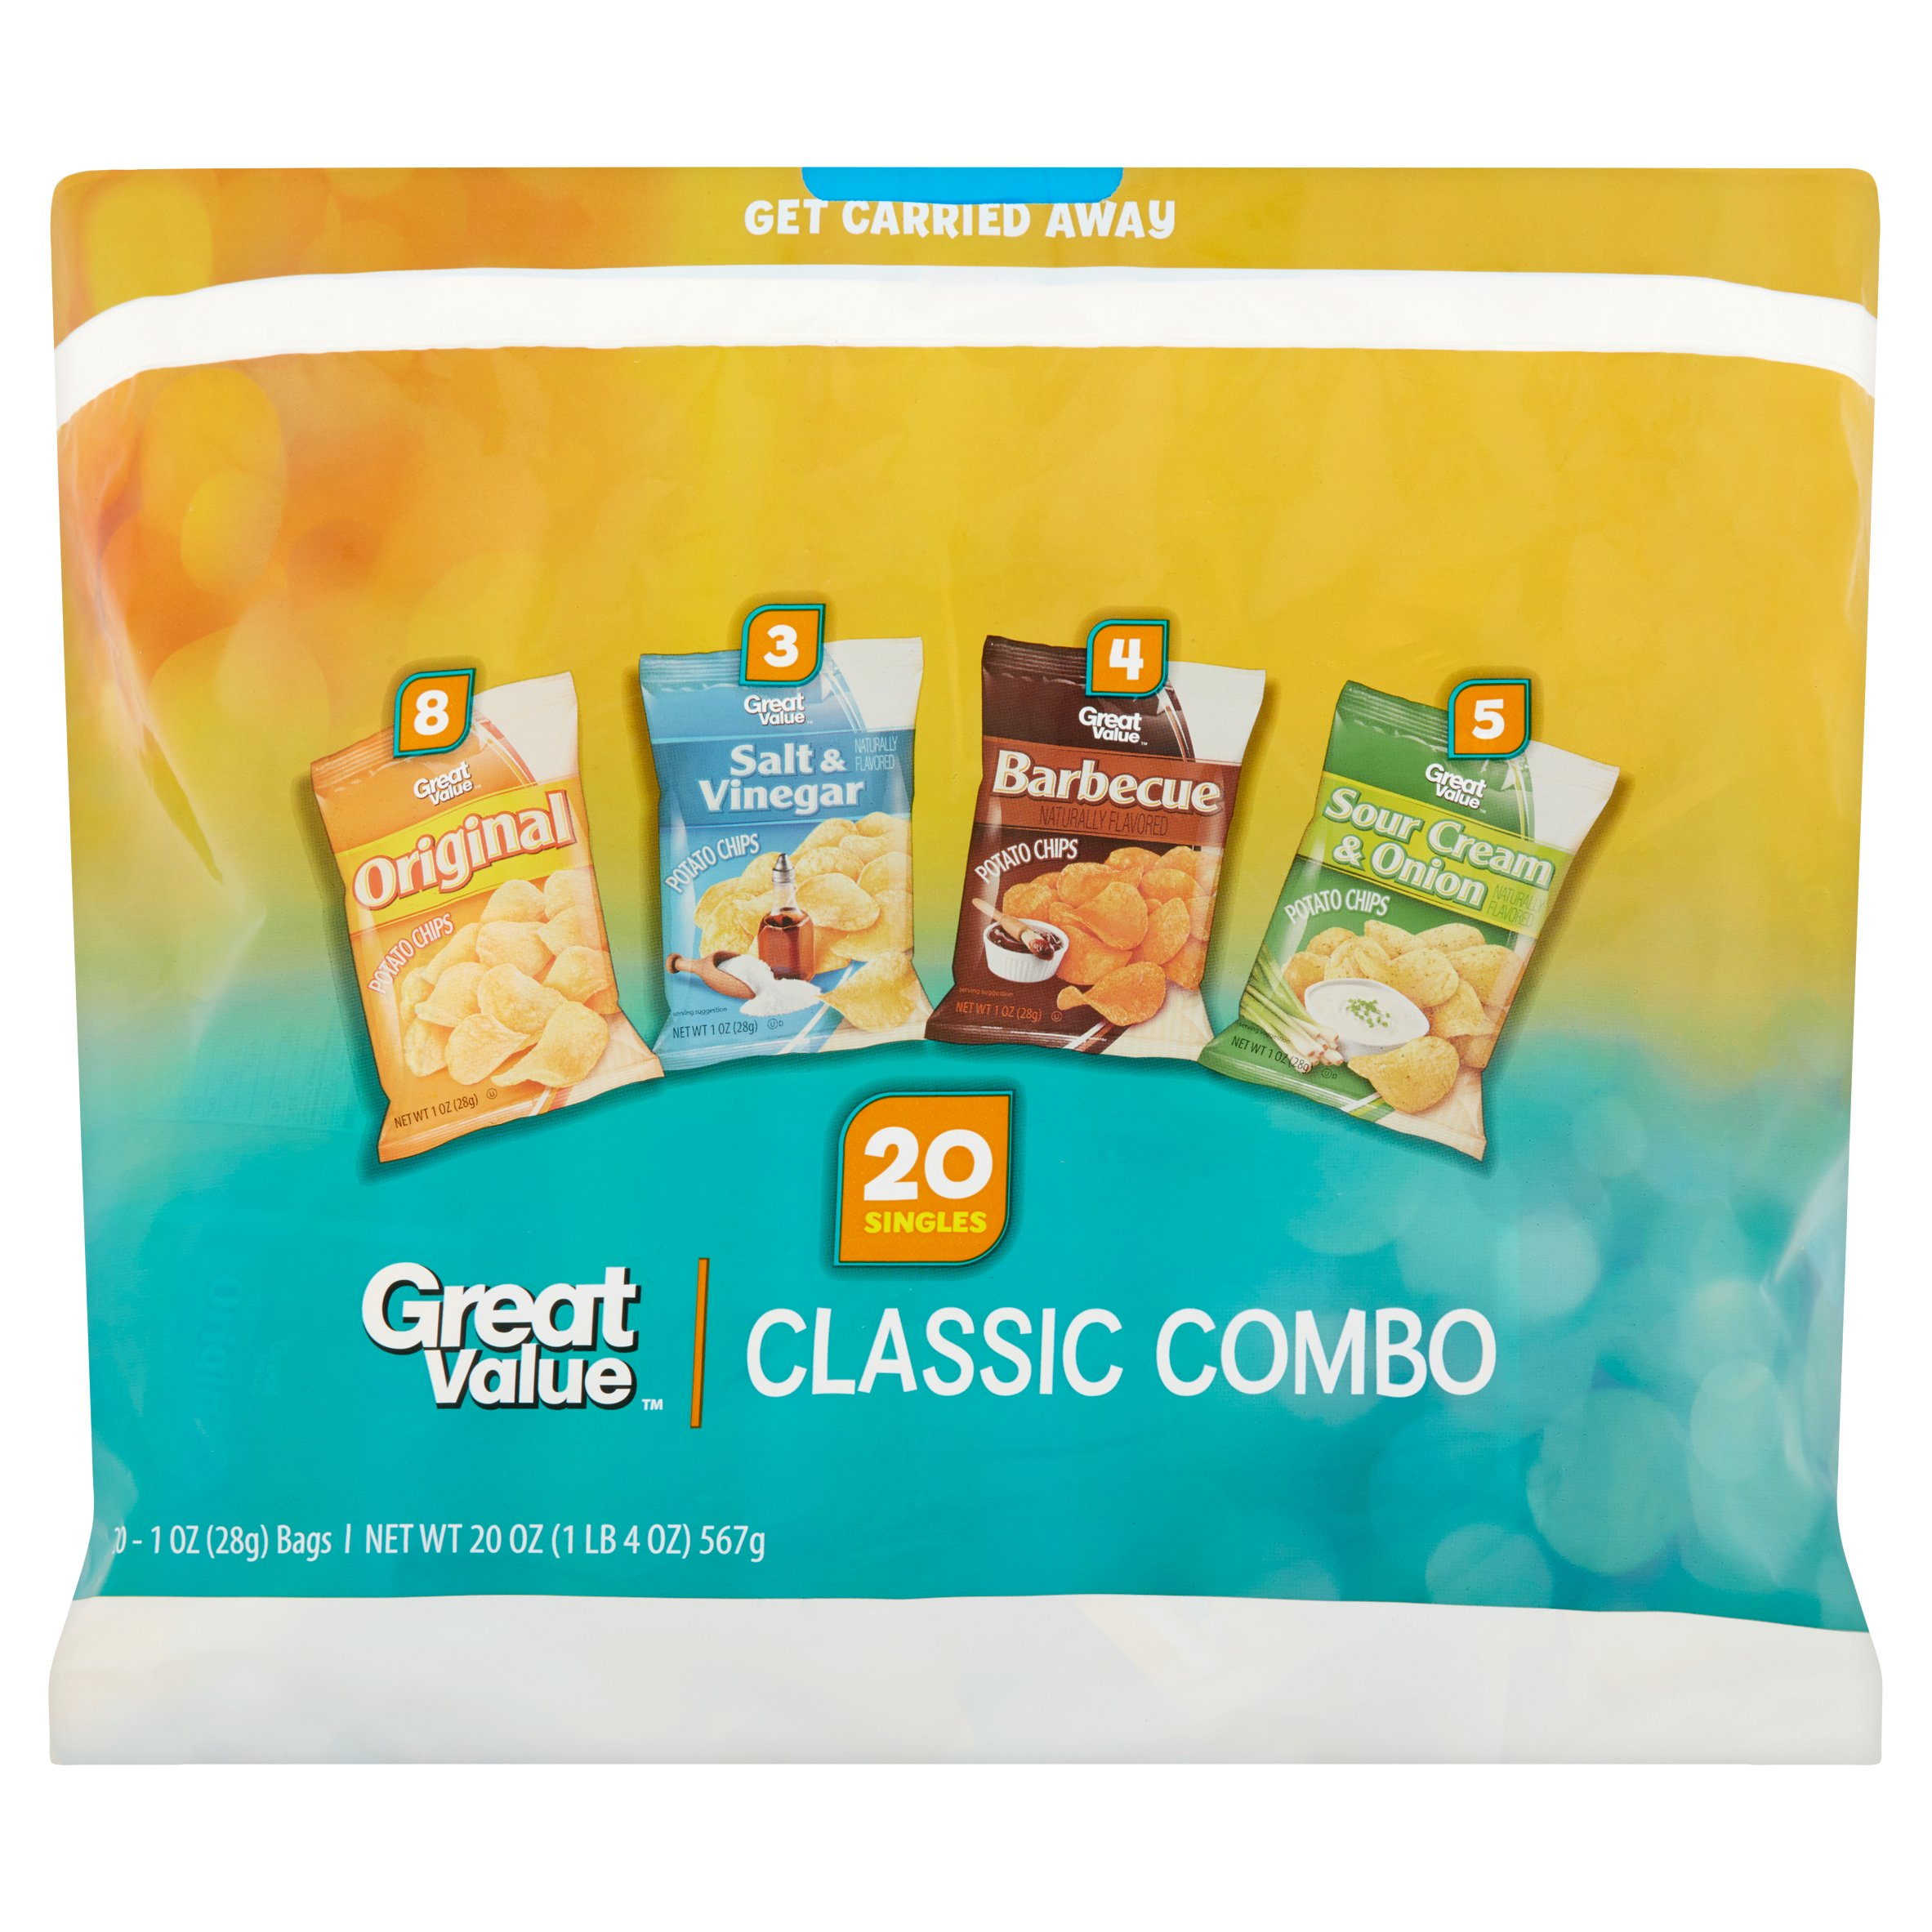 Great Value Potato Chips Variety Pack Snack Bags, 1 oz, 20 count by Wal-Mart Stores, Inc.